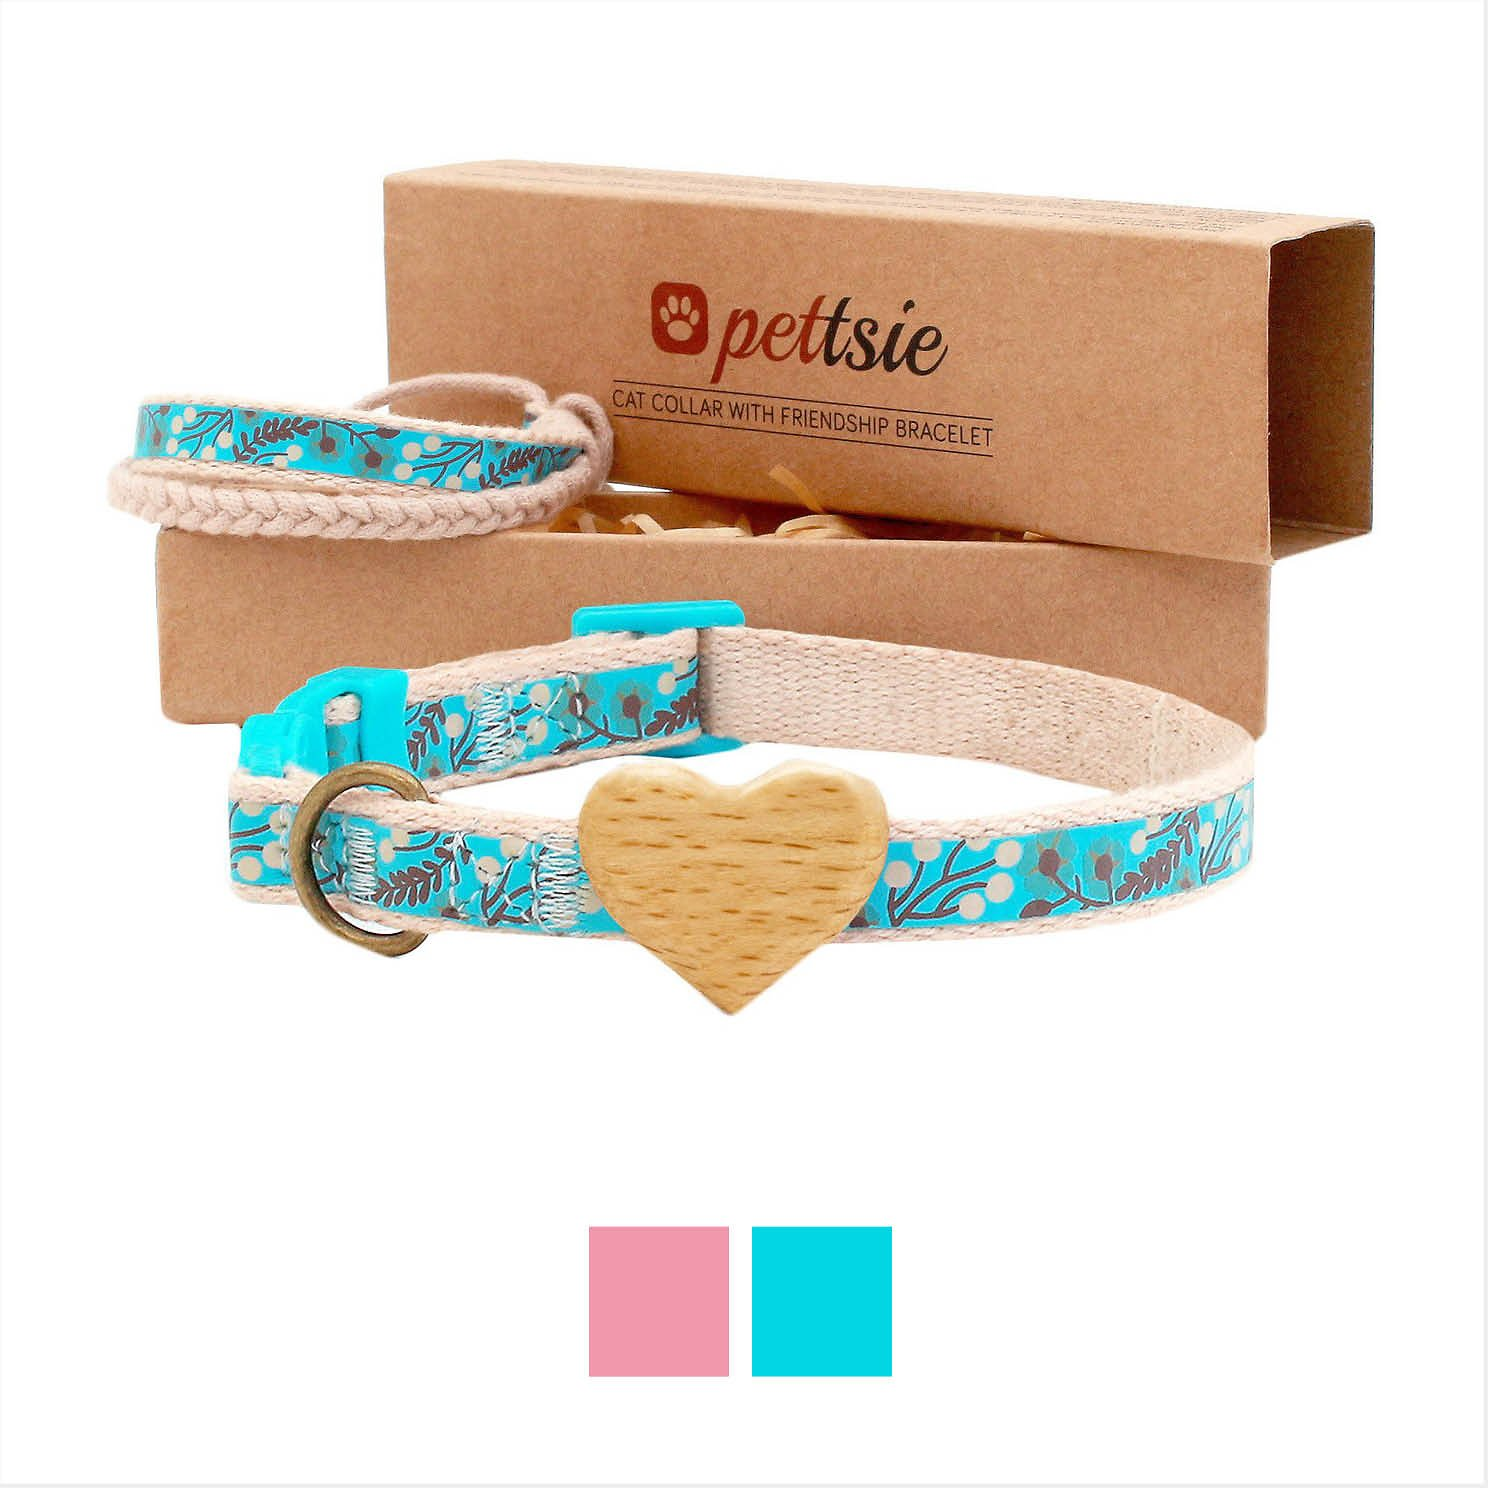 Comfortable Cotton Pettsie Cat Collar Breakaway Safety and Friendship Bracelet for You D-Ring for Accessories Adjustable 7.5-11.5 Inch 100/% Cotton for Extra Safety